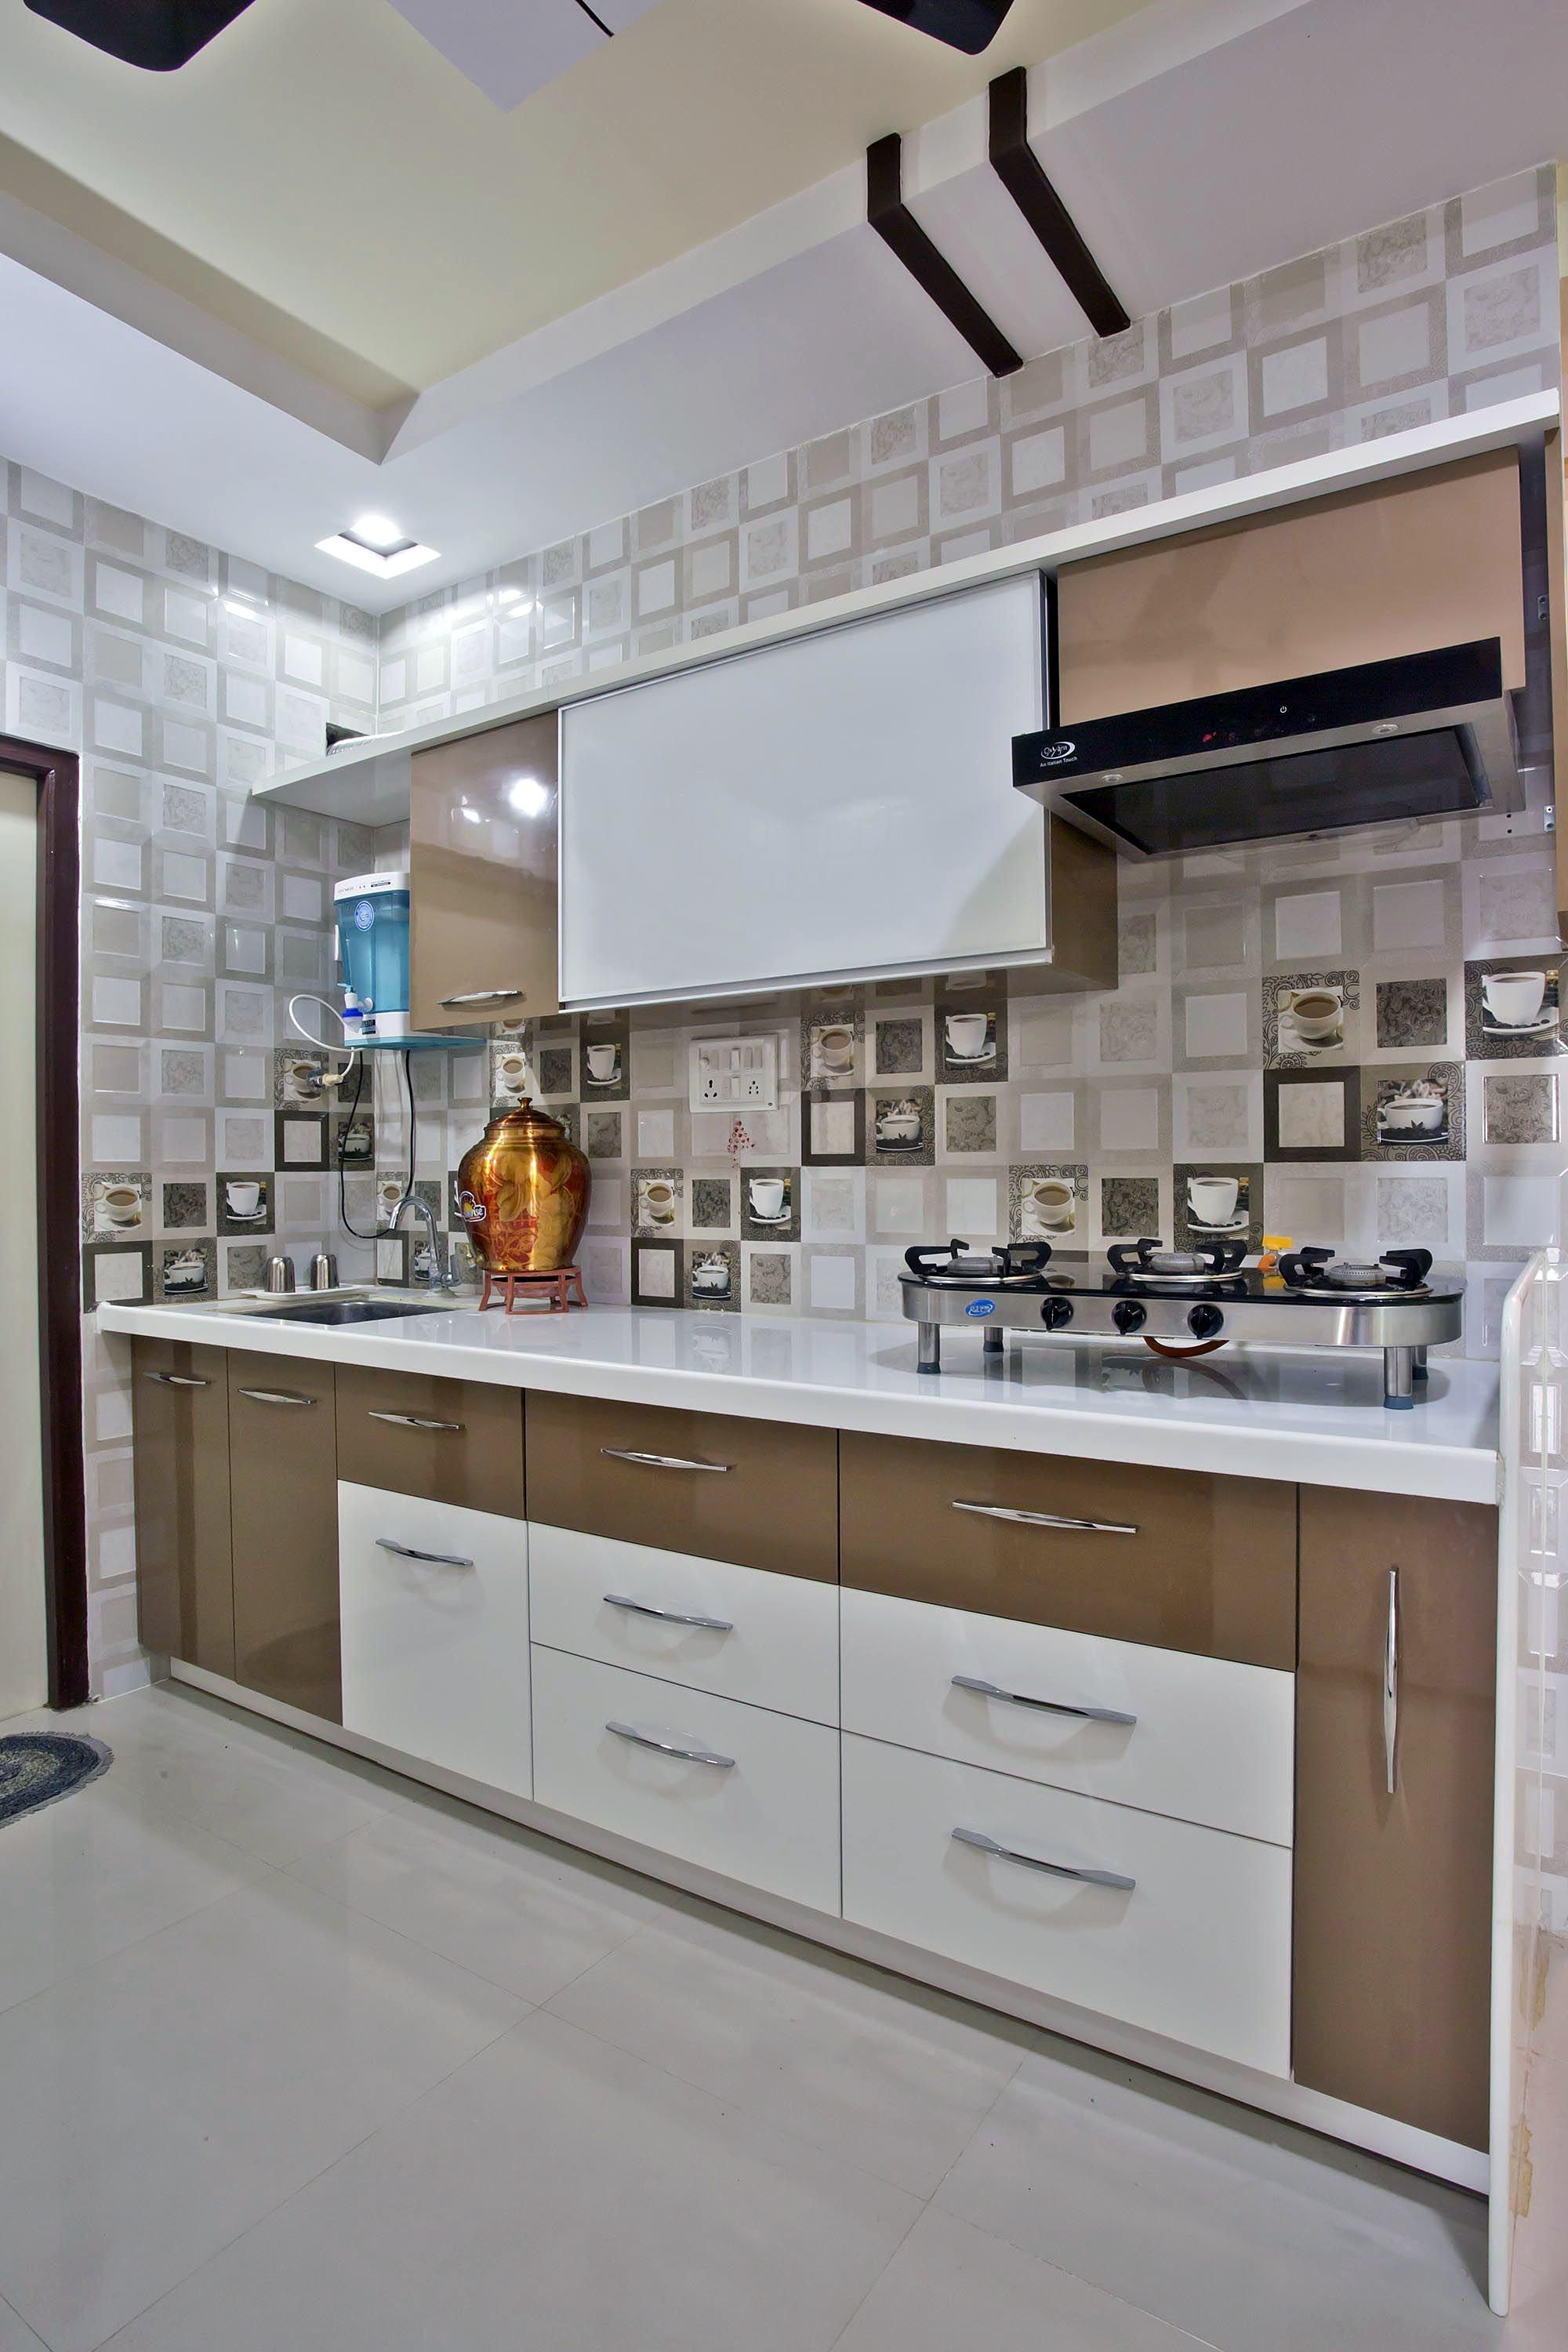 Smal Kitchen Ideas To Transform Your Portable Room Into A Smart Super Organised Space Kitchen Modular White Kitchen Remodeling Kitchen Remodel Small